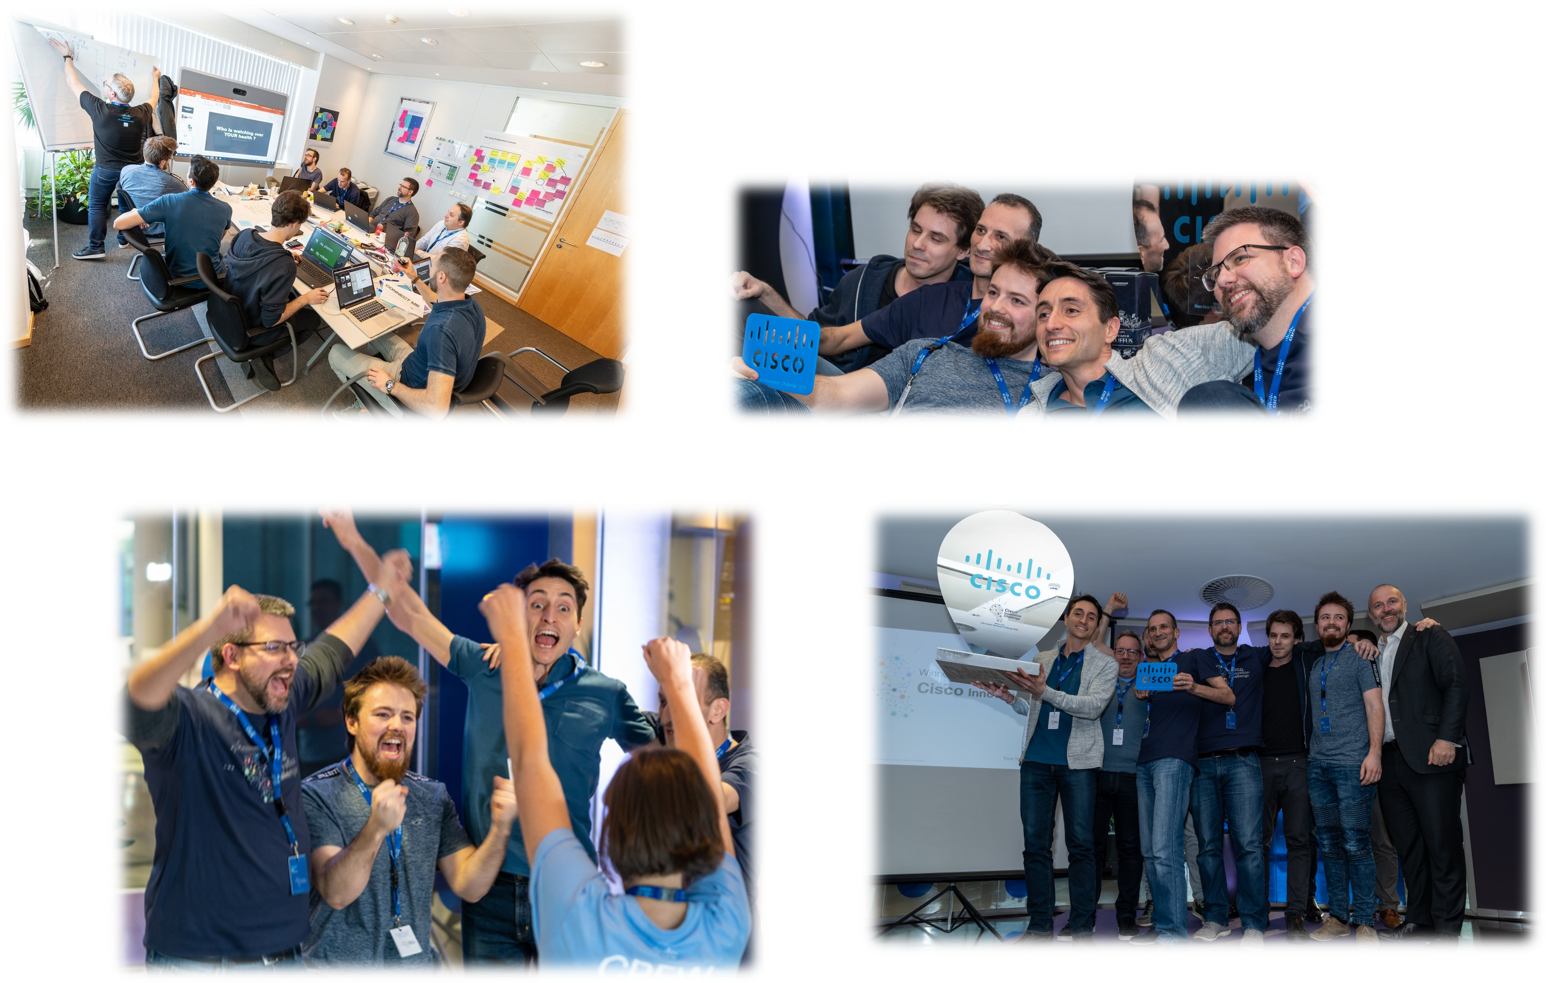 Sciensano's team excited to have won the hackaton